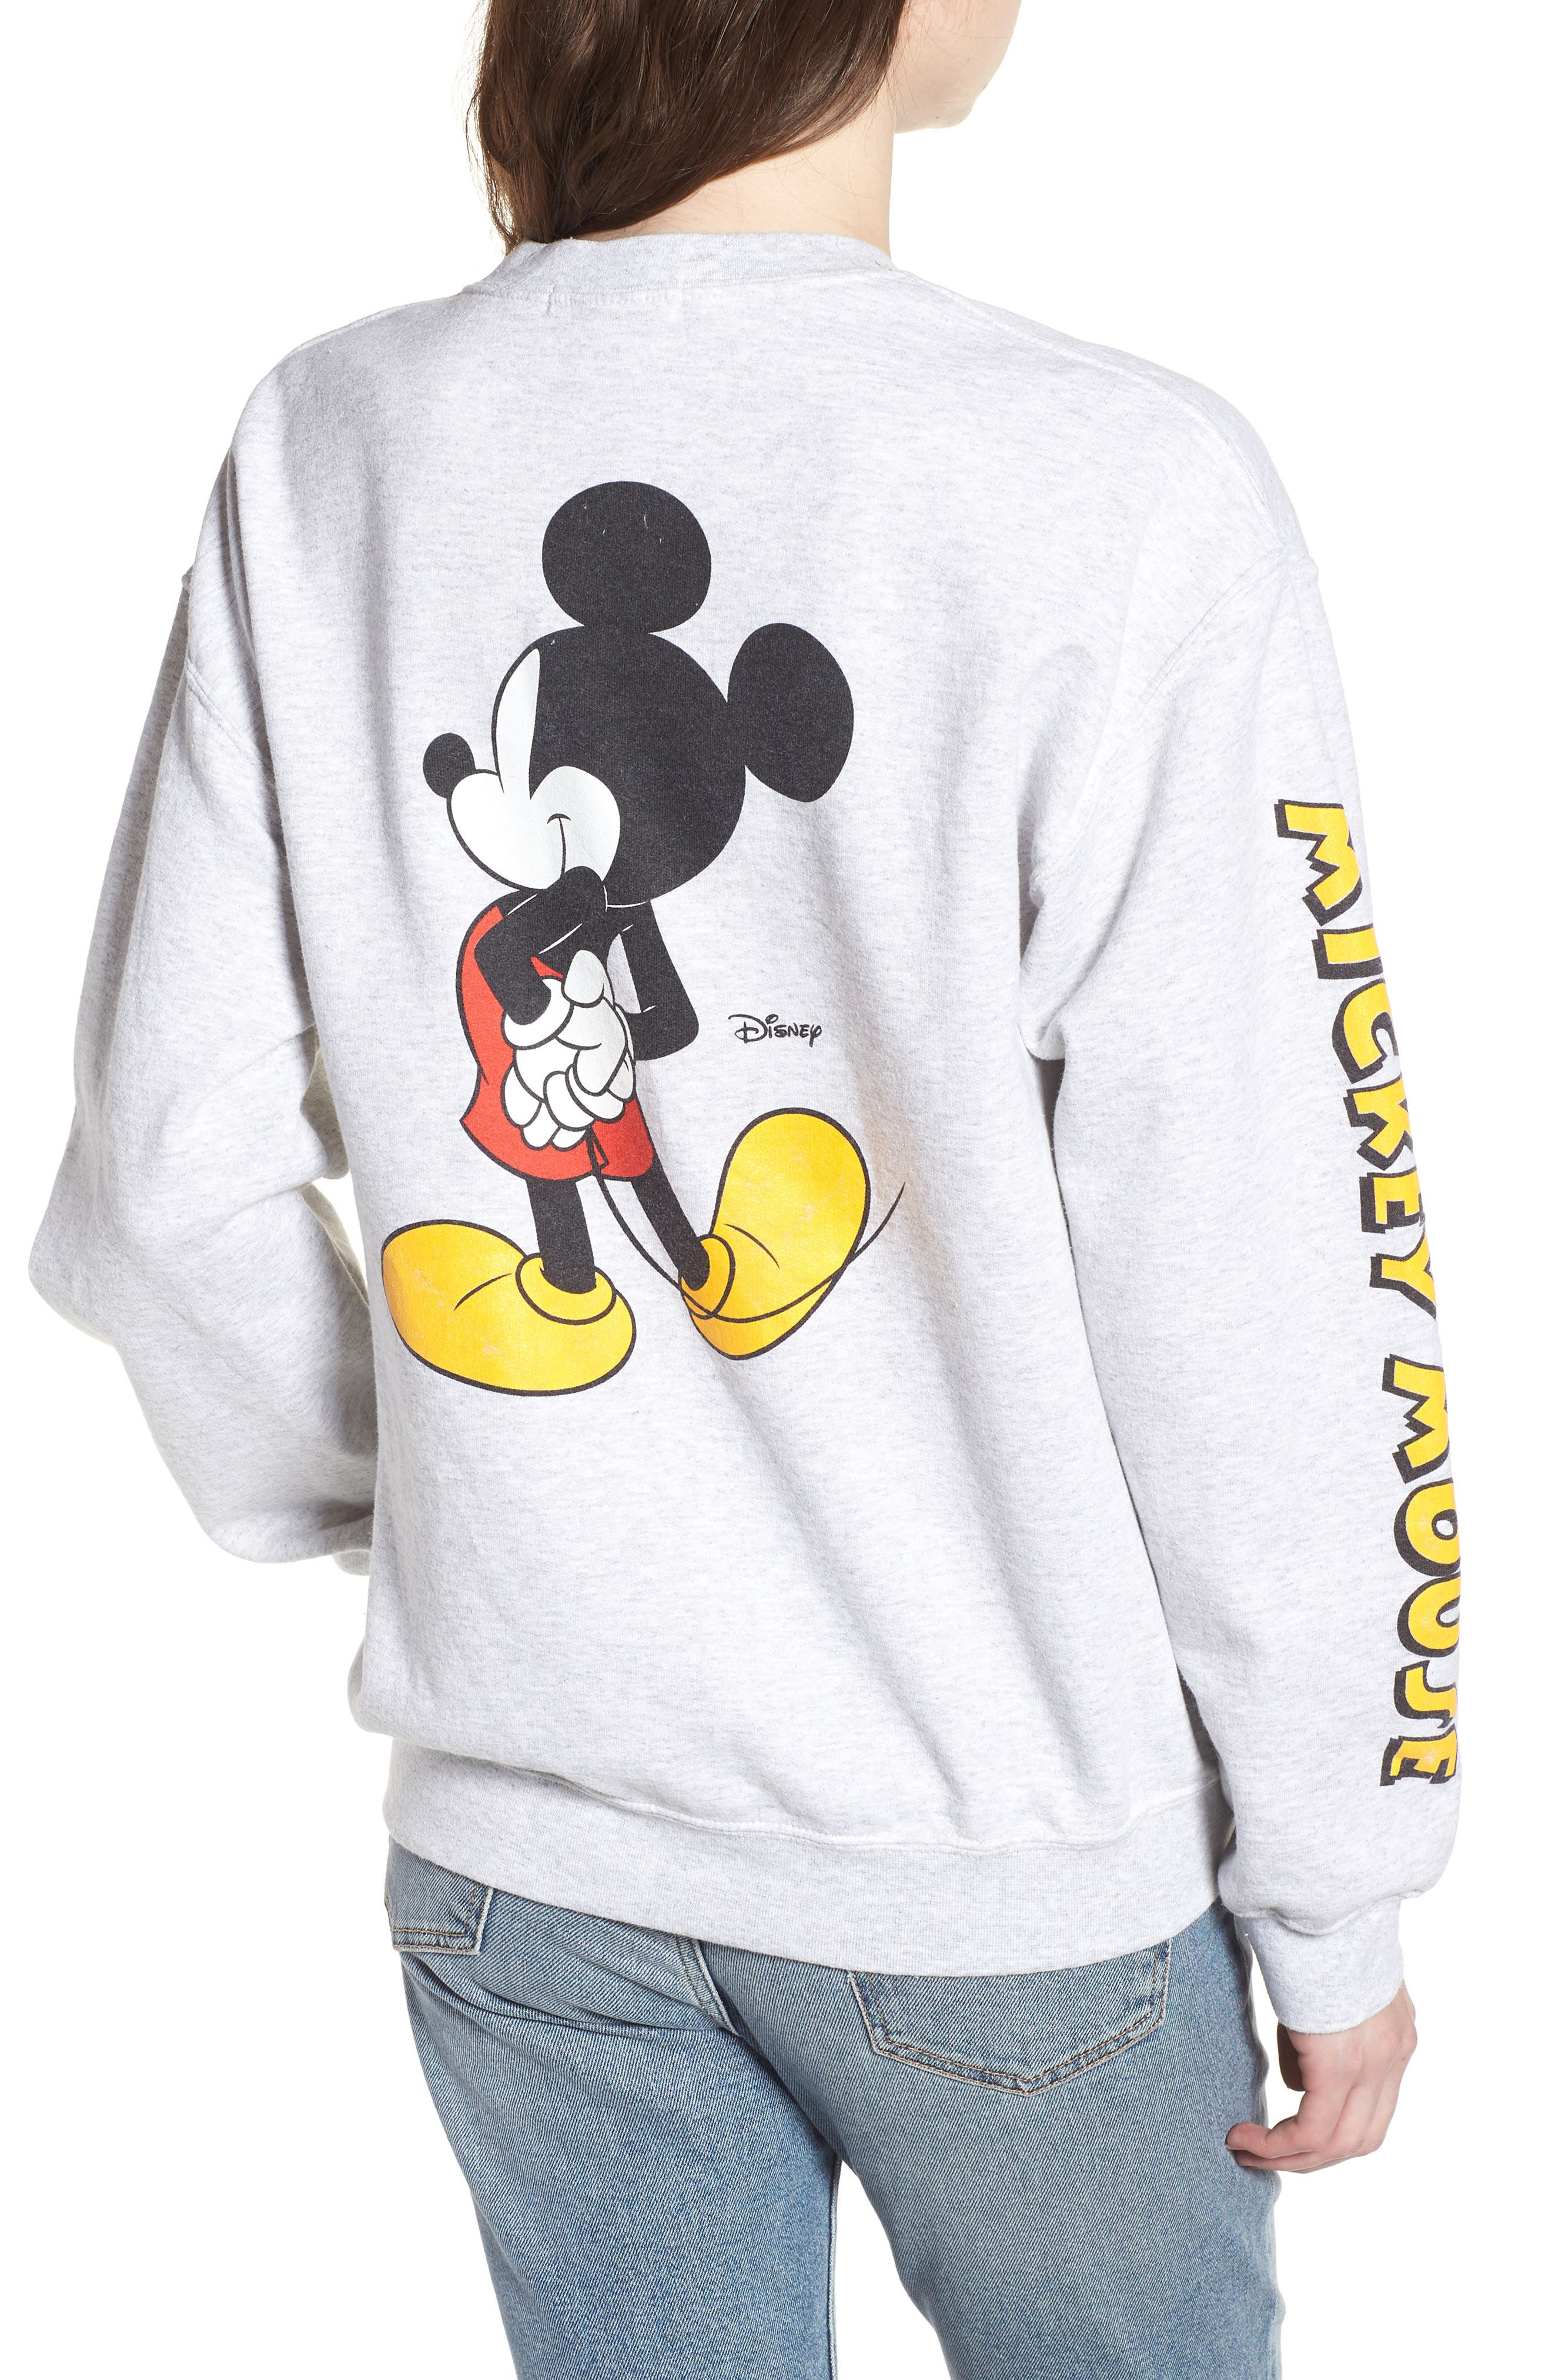 Mickey Mouse Oversize Sweatshirt,                             Alternate thumbnail 2, color,                             Ash Heather